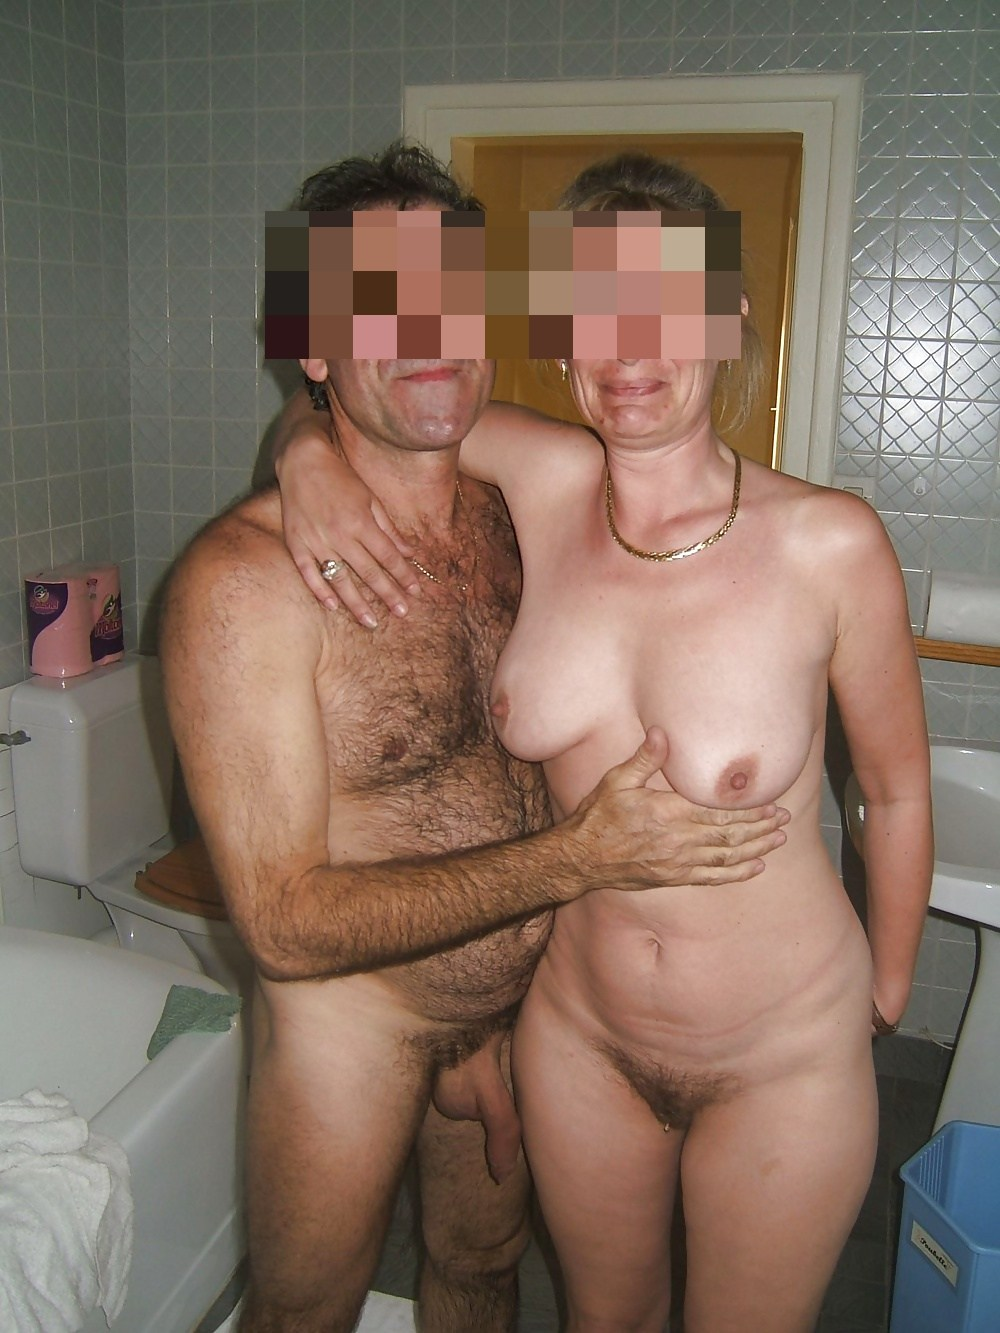 Rencontre echangiste de 2 couples en foret - 3 part 3